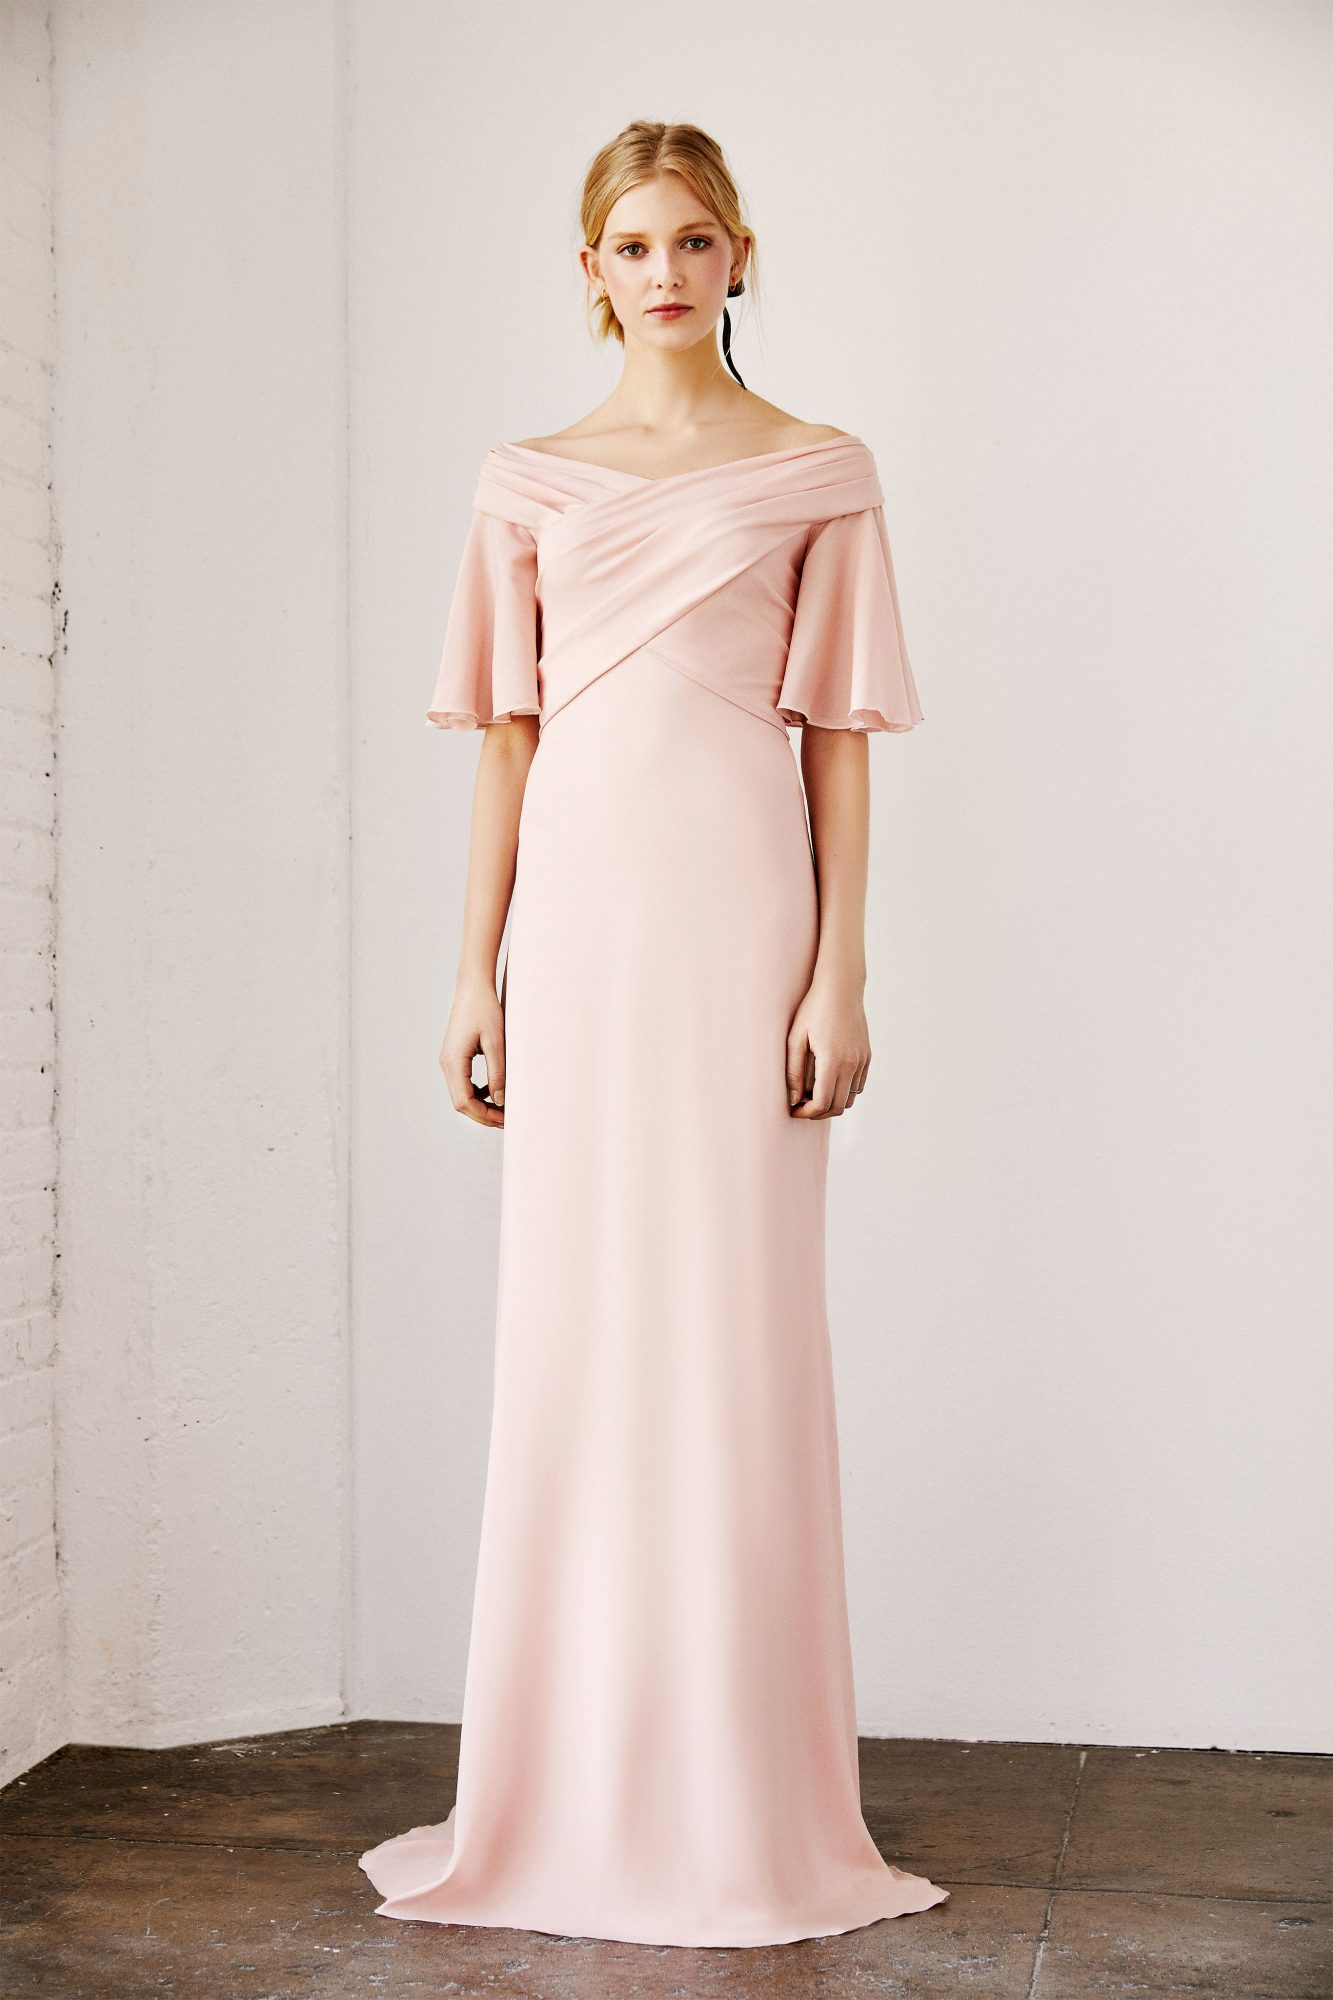 tadashi shoji wedding dress spring 2019 pink elbow length sleeves column